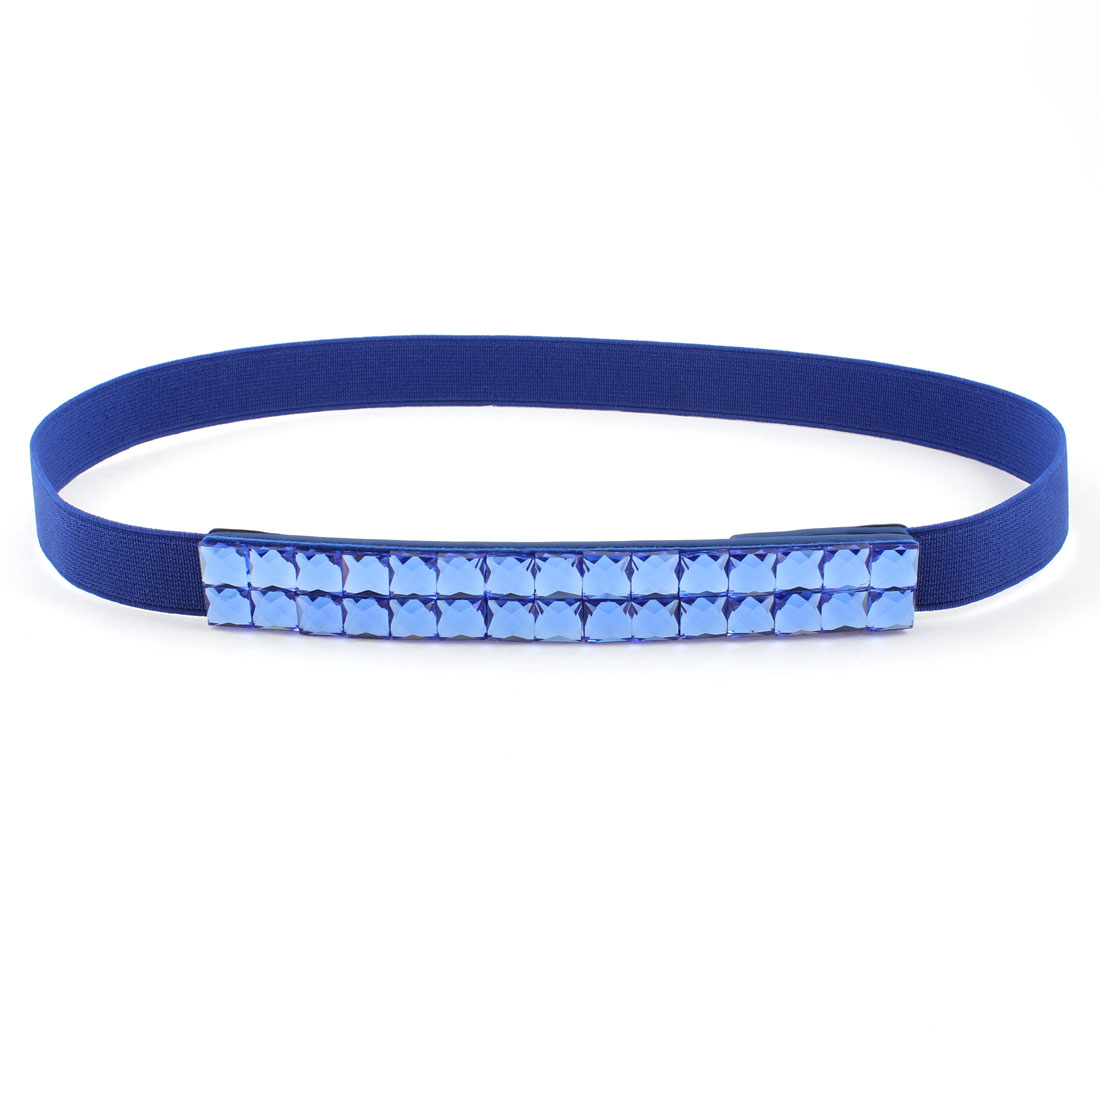 Faux Crystal Accent Press Stud Buckle Stretched Waist Belt Dark Blue for Ladies